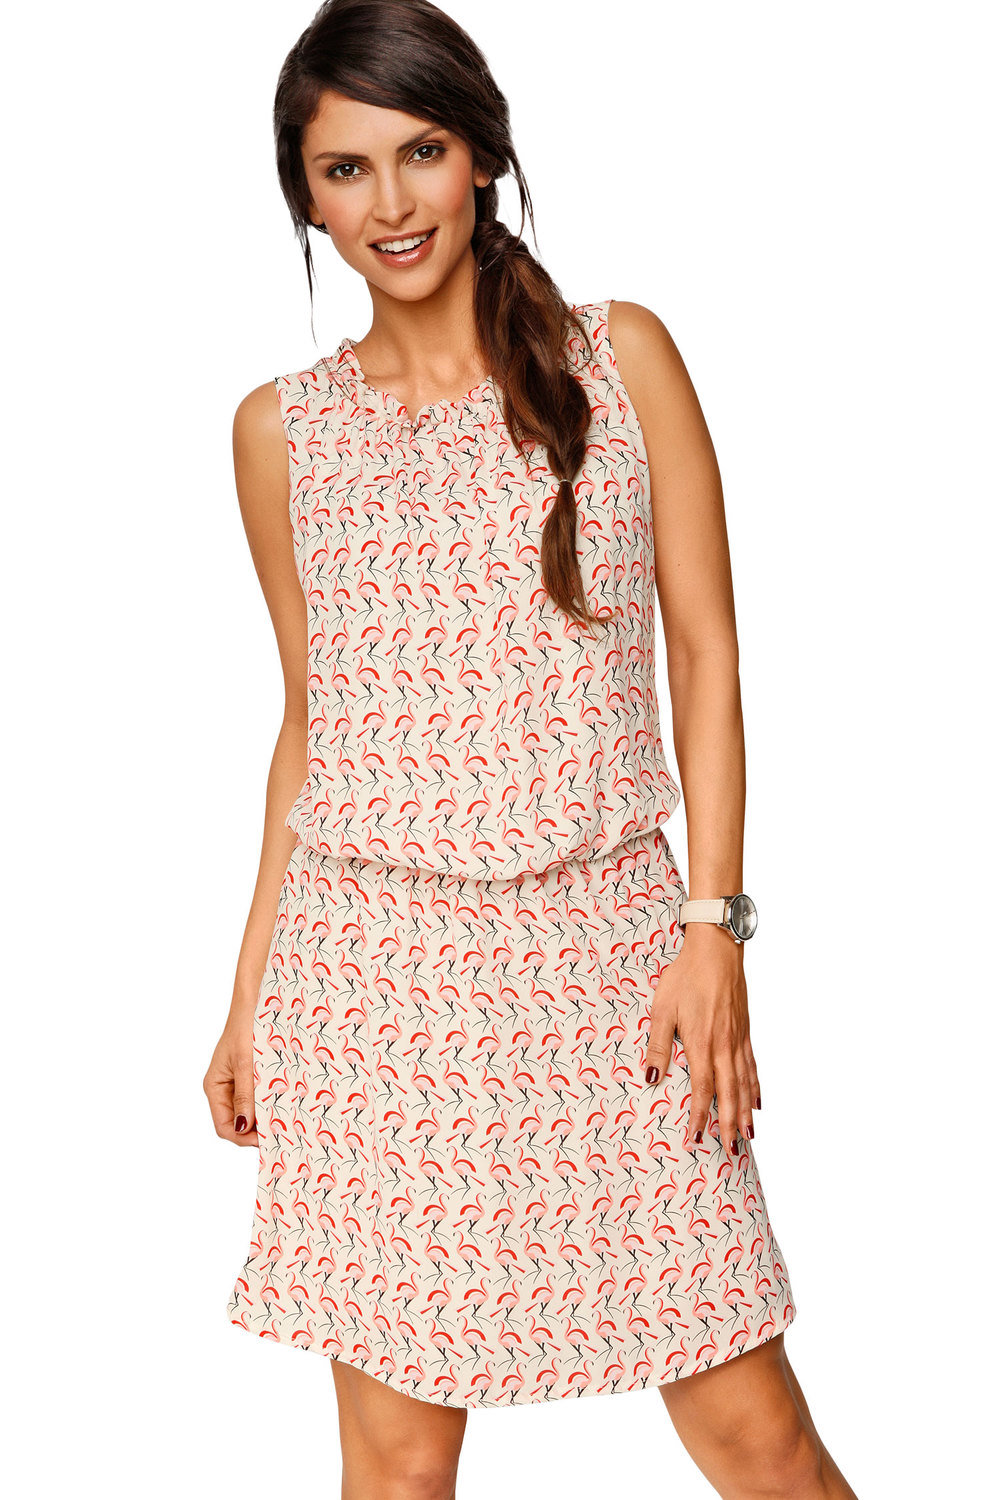 280ed917d24 Heine Flamingo Print Summer Dress Online